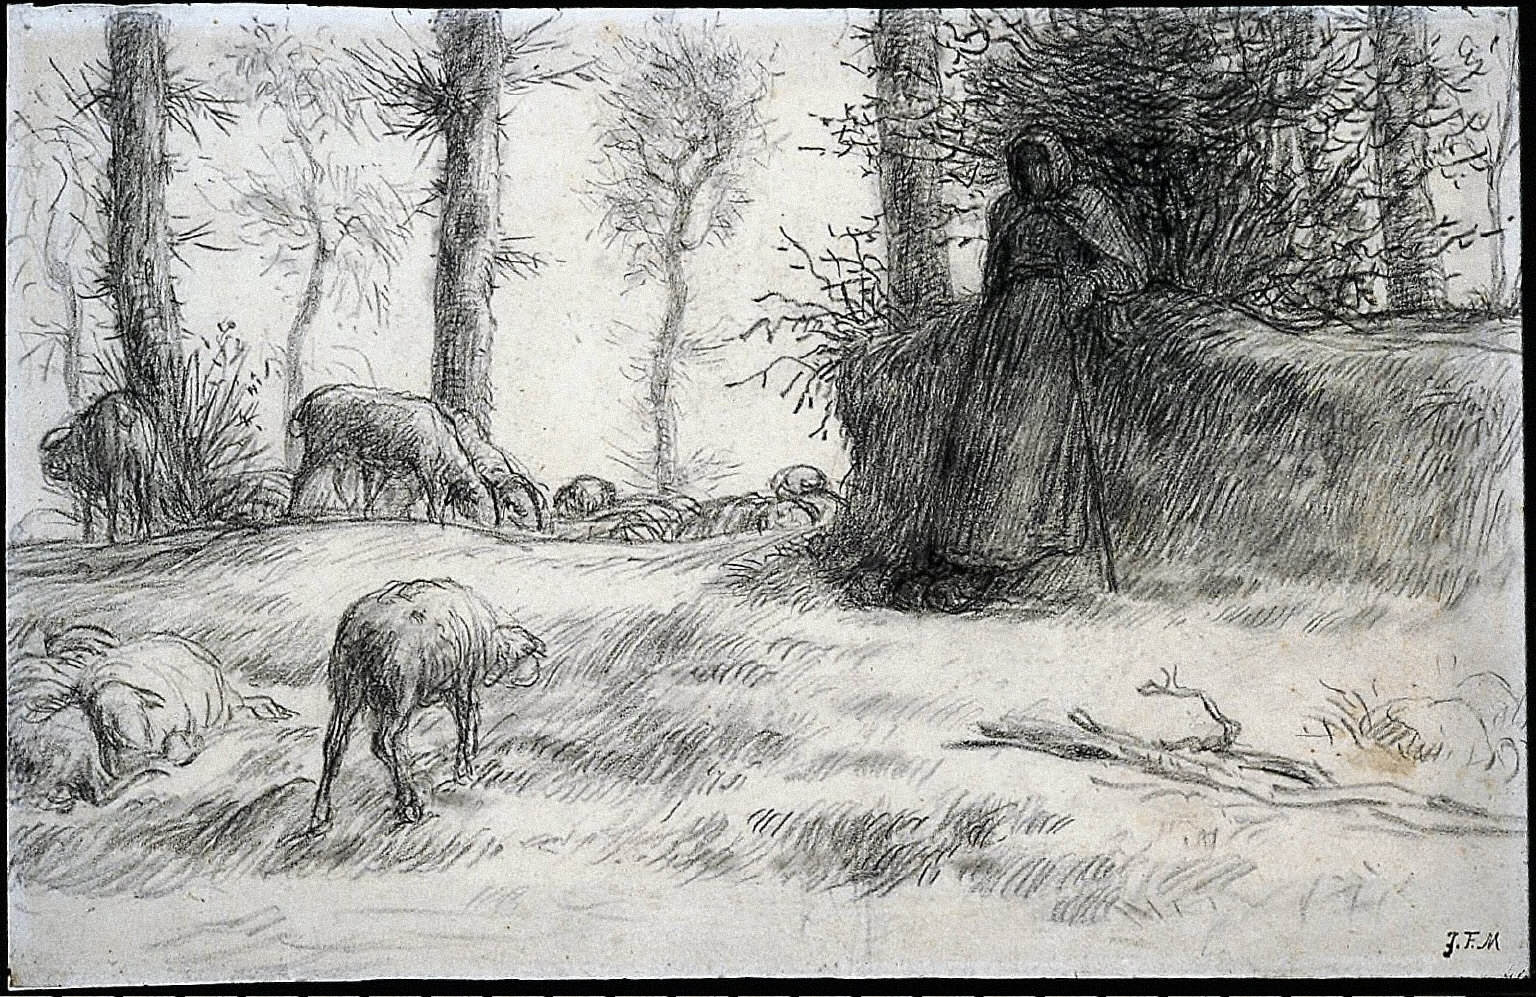 [Landscape with Sheperdess and Sheep, Winter, Landscape with Shepherdess and Sheep, Winter]